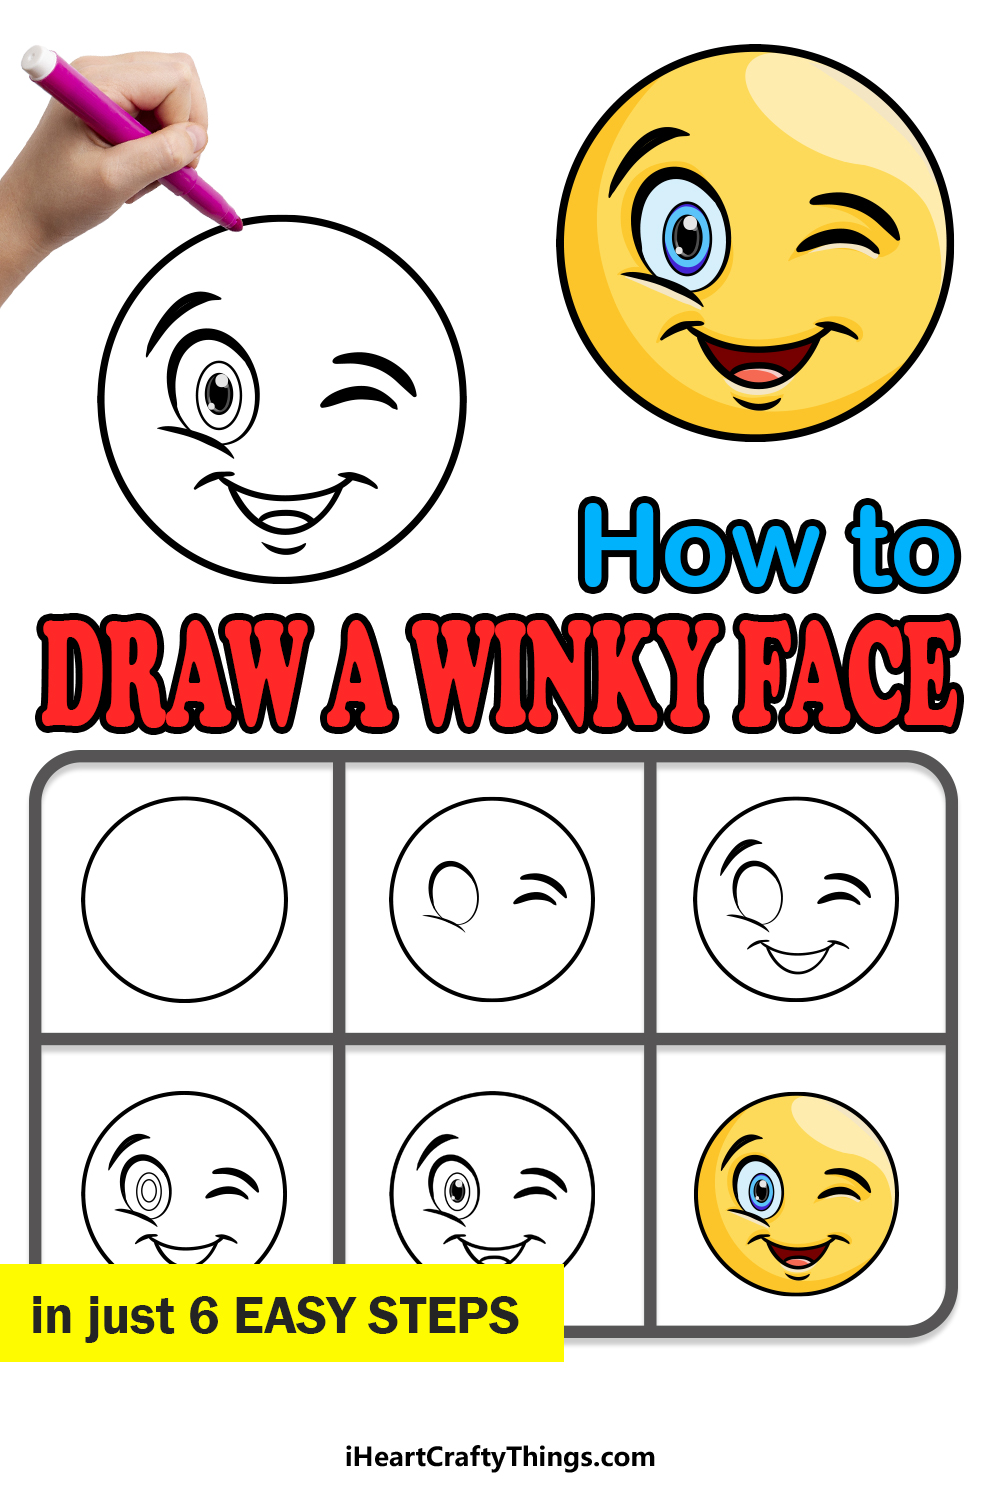 how to draw a winky face in 6 easy steps